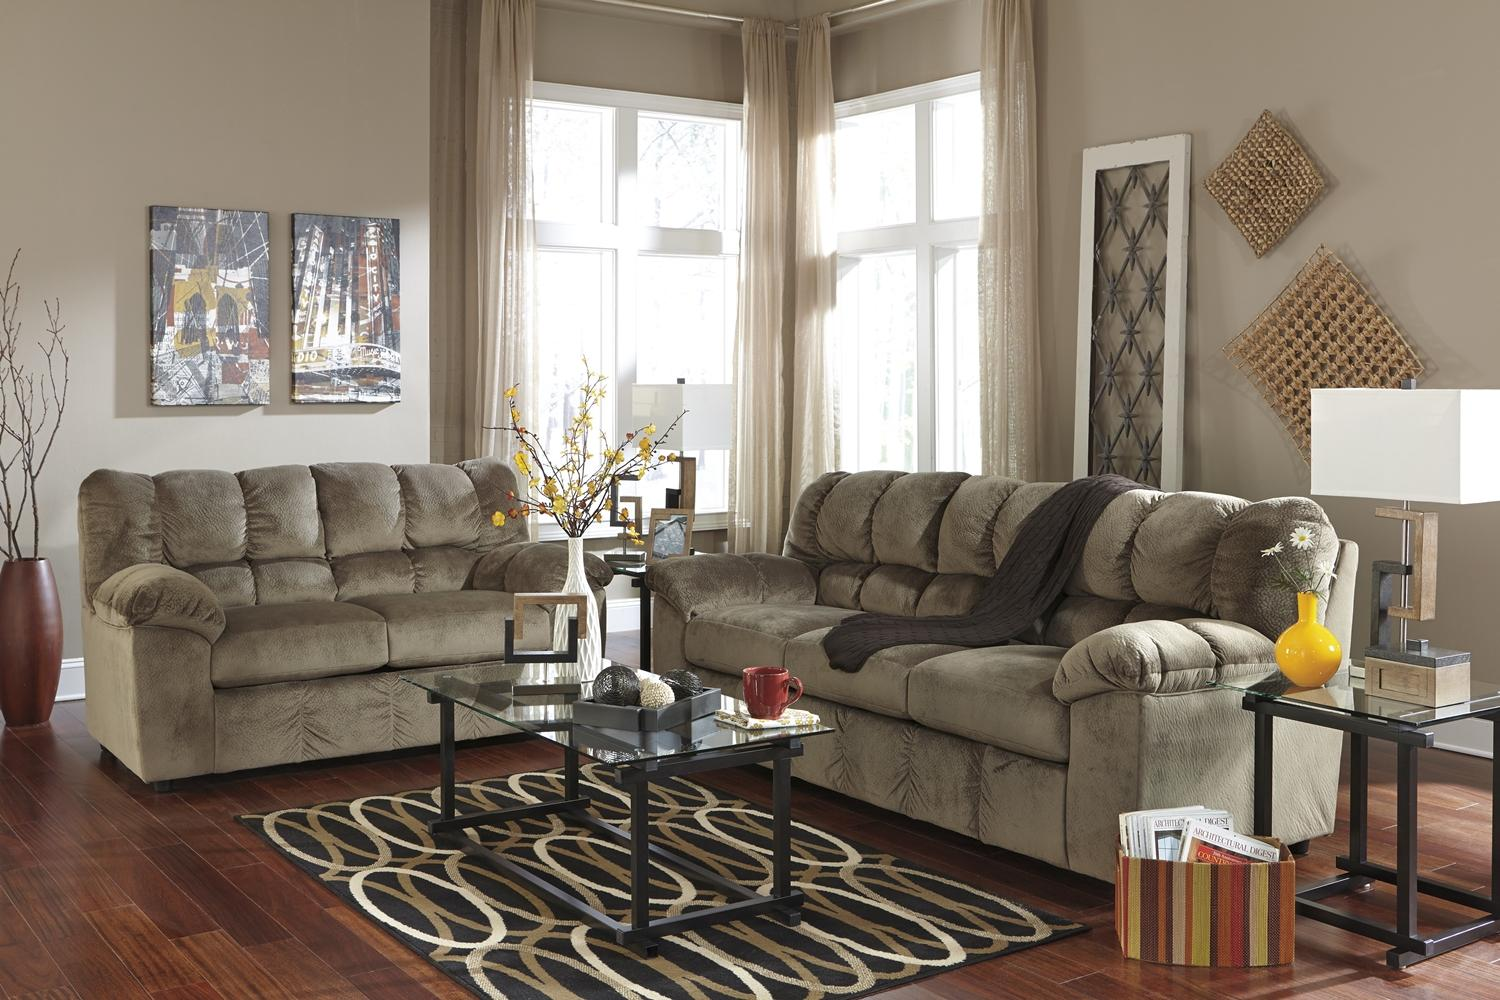 Signature Design by Ashley Julson - Dune Stationary Living Room Group - Item Number: 26601 Living Room Group 1